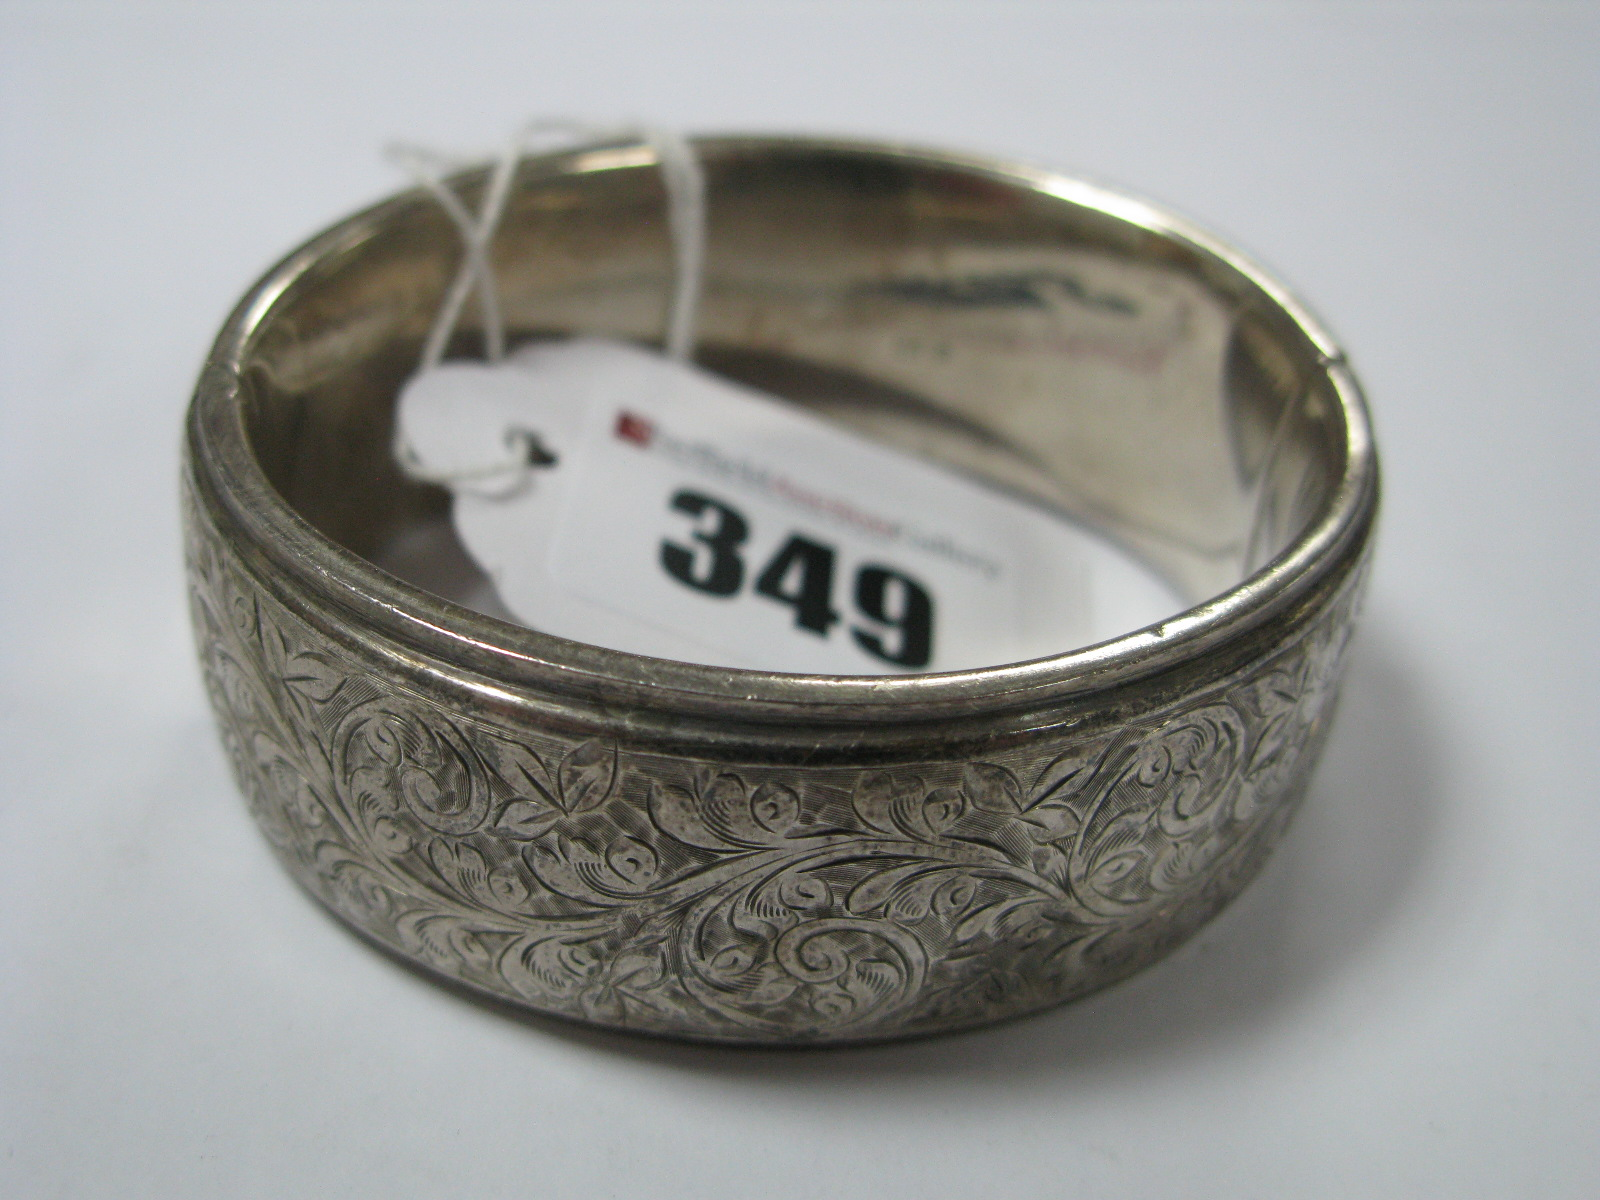 Lot 349 - A Wide Hallmarked Silver Bangle, with part foliate design.